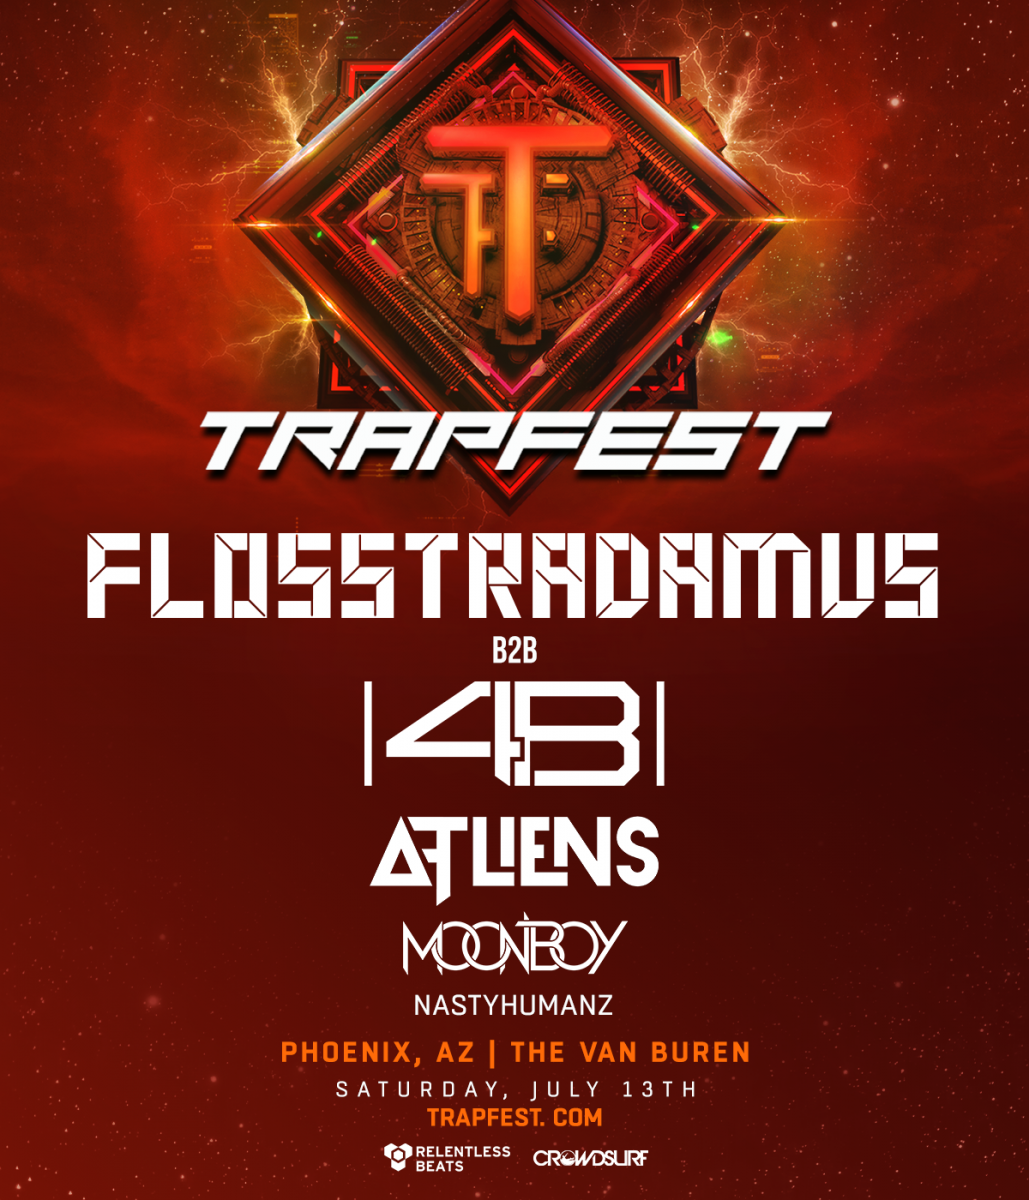 Flyer for Trapfest Phoenix 2019